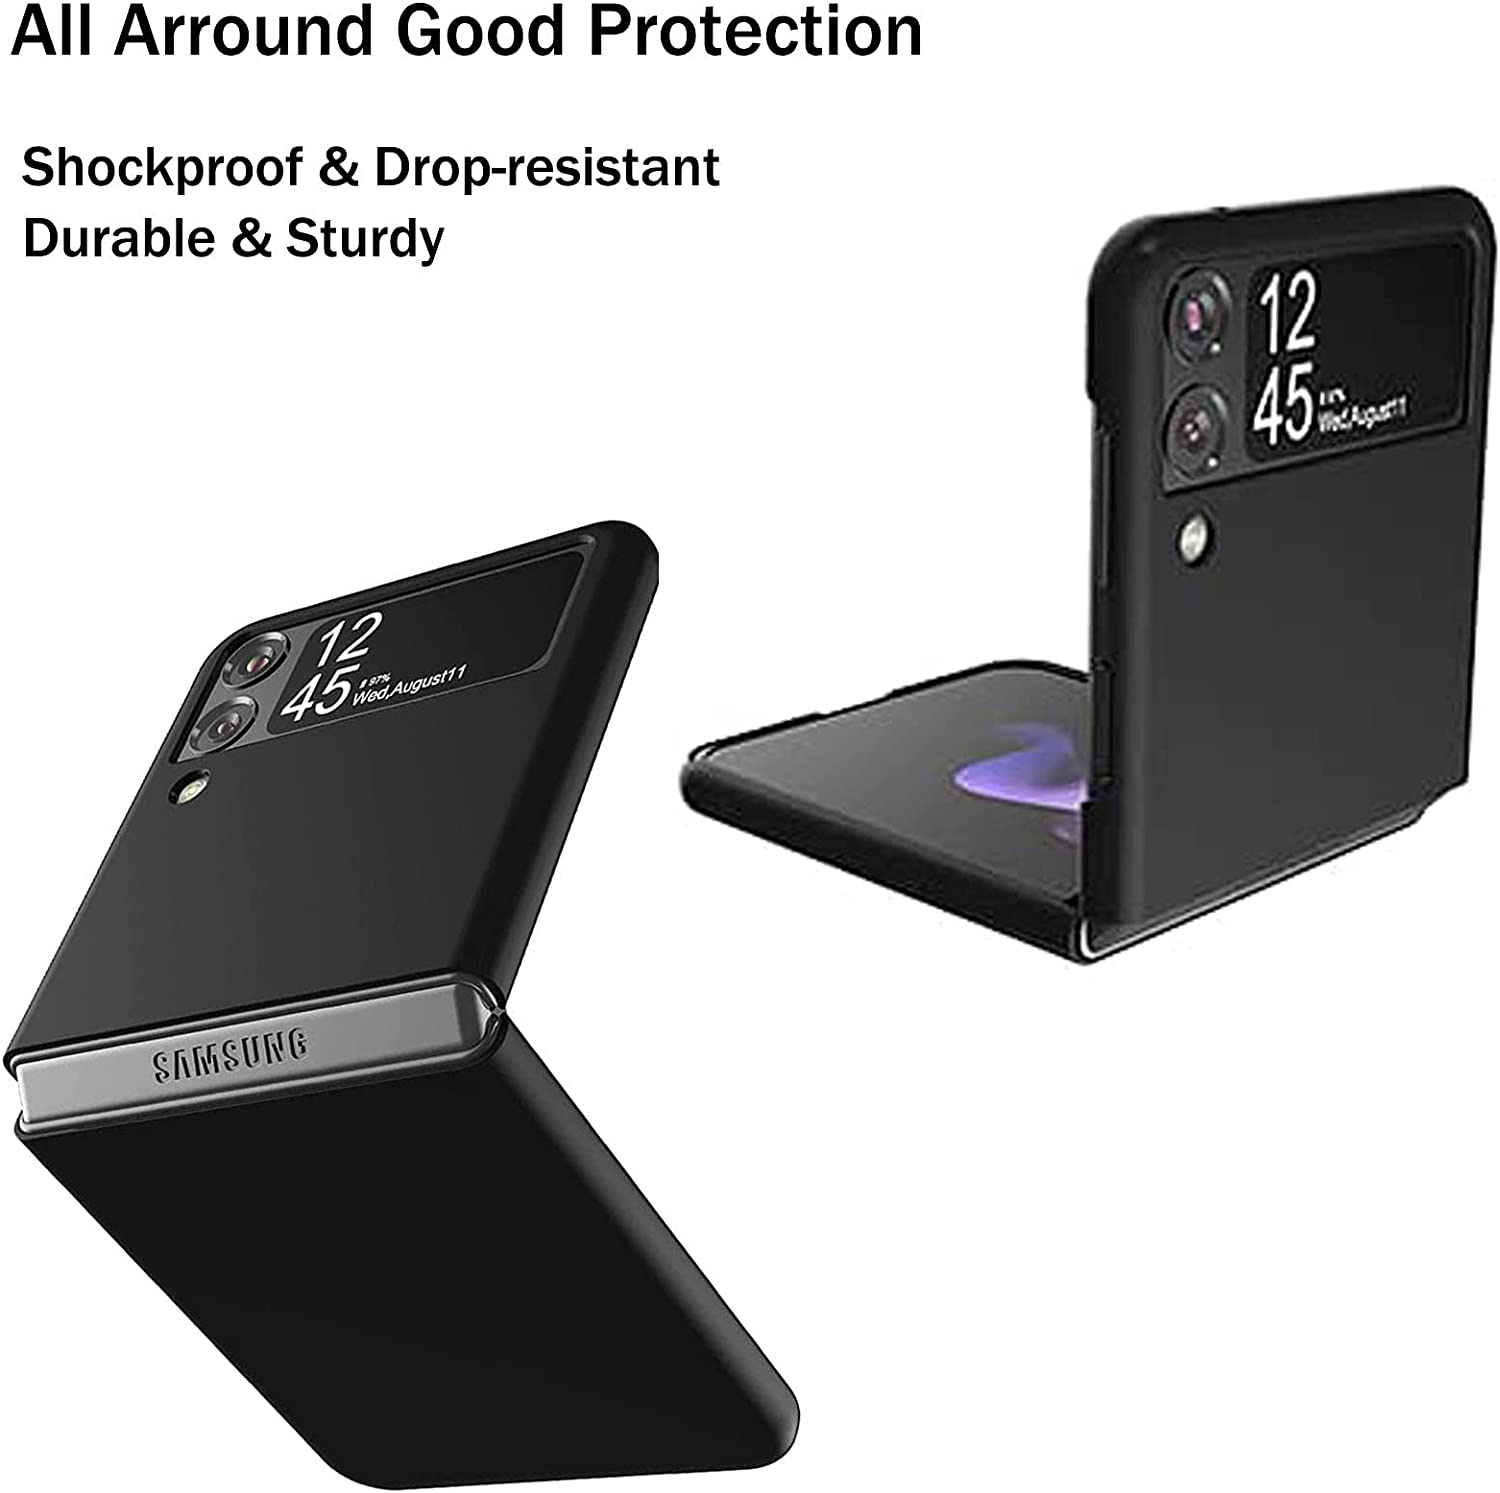 Slim Case for Samsung Galaxy Z Flip 3, Ultra Thin Lightweight Cover Durable Anti-Drop Wear-Resistant Hard PC Shell with Non-Slip Grip Protective Phone Defender for Samsung Z Flip 3 5G 2021 - Black